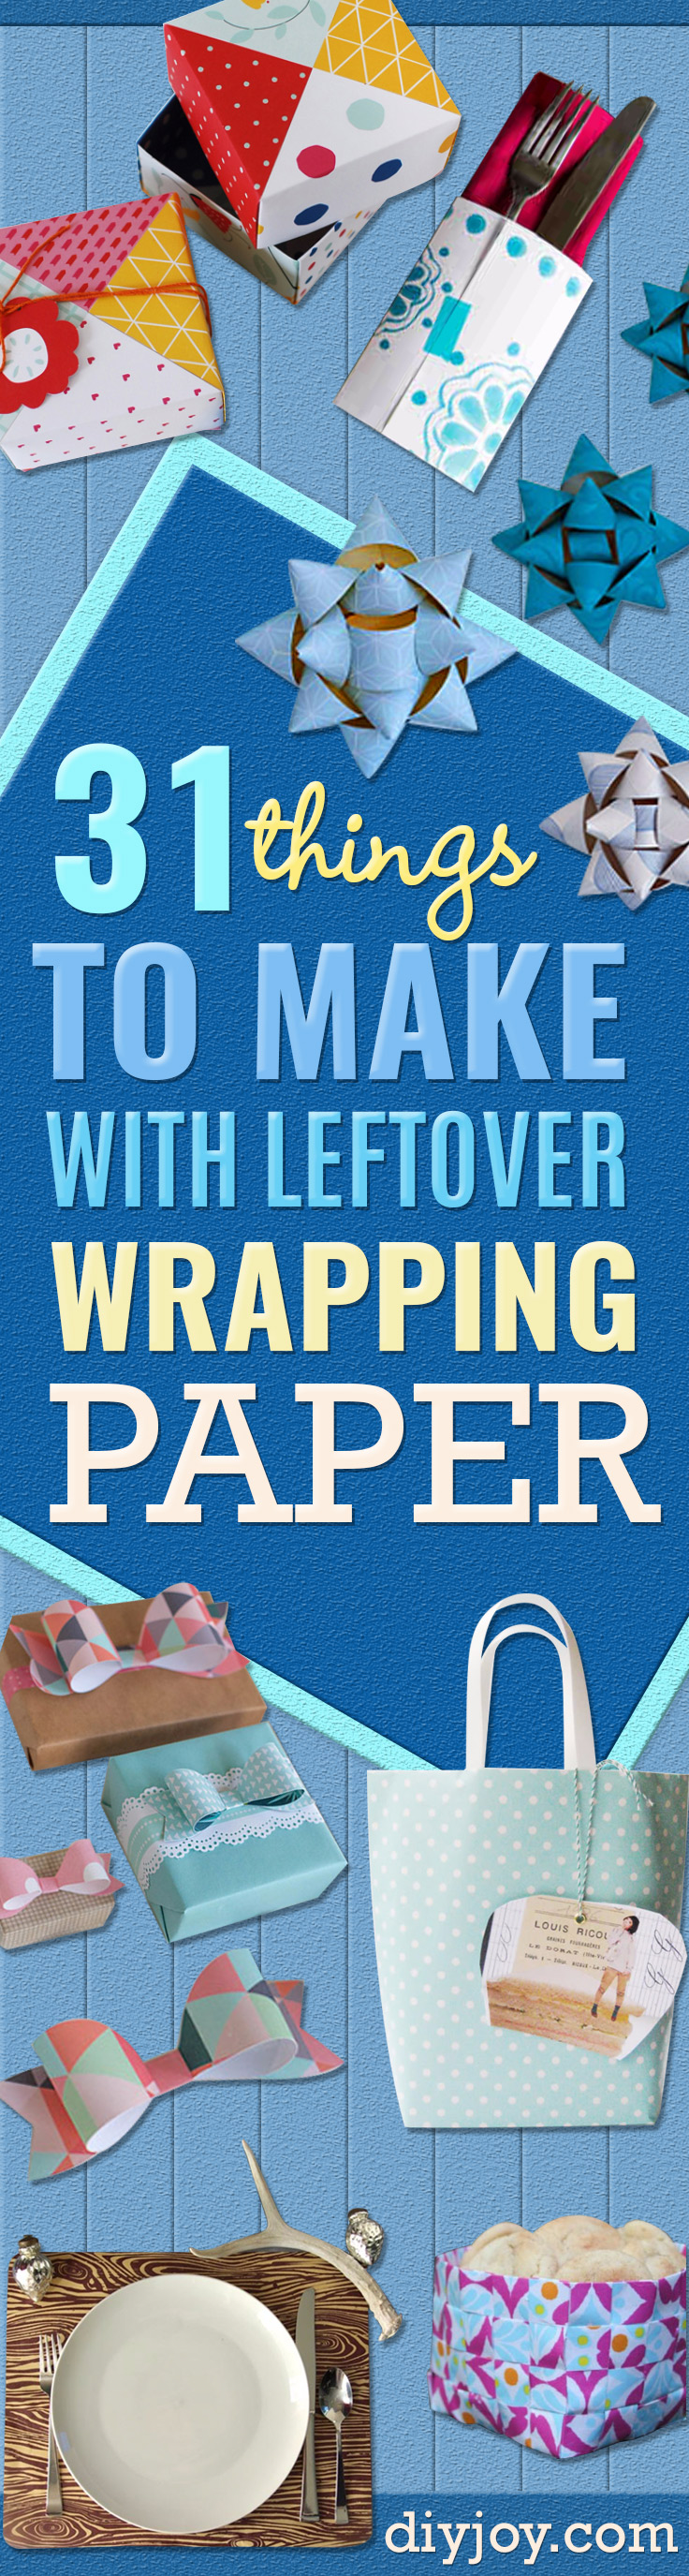 Cool Things to Make With Leftover Wrapping Paper - Easy Crafts, Fun DIY Projects, Gifts and DIY Home Decor Ideas - Don't Trash The Christmas Wrapping Paper and Learn How To Make These Awesome Ideas Instead - Step by Step Tutorials With Instructions